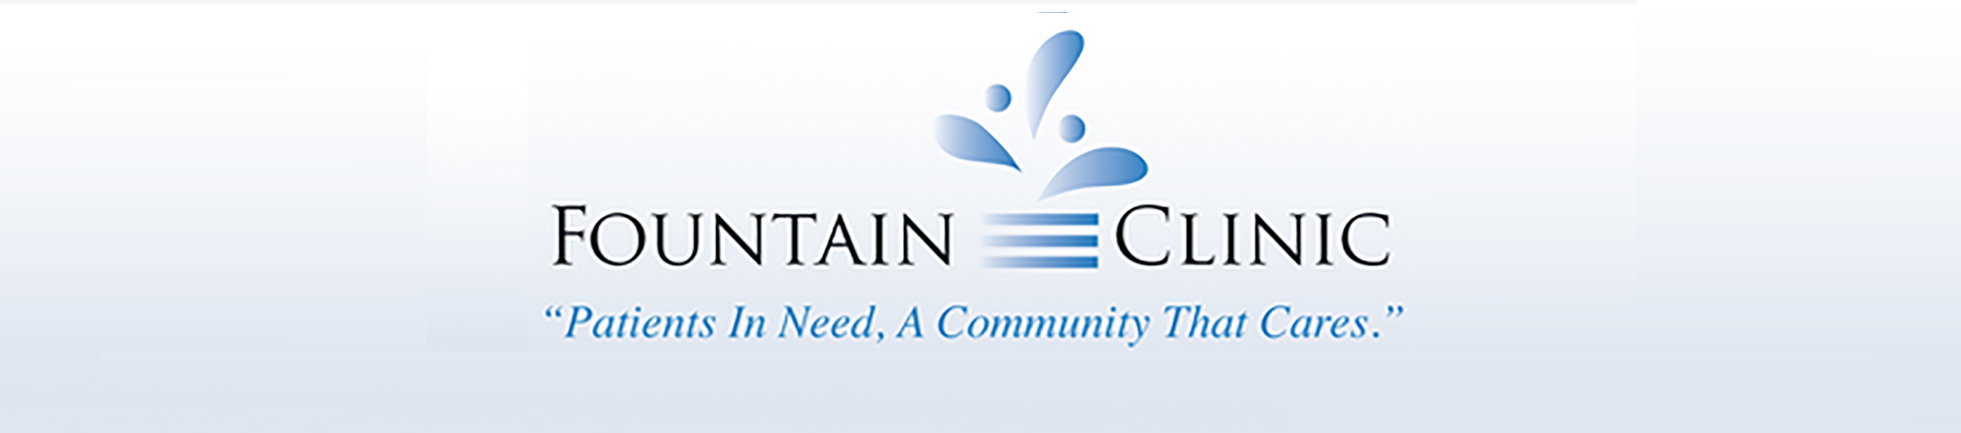 Fountain Clinic - Patients In Need, A Community That Cares